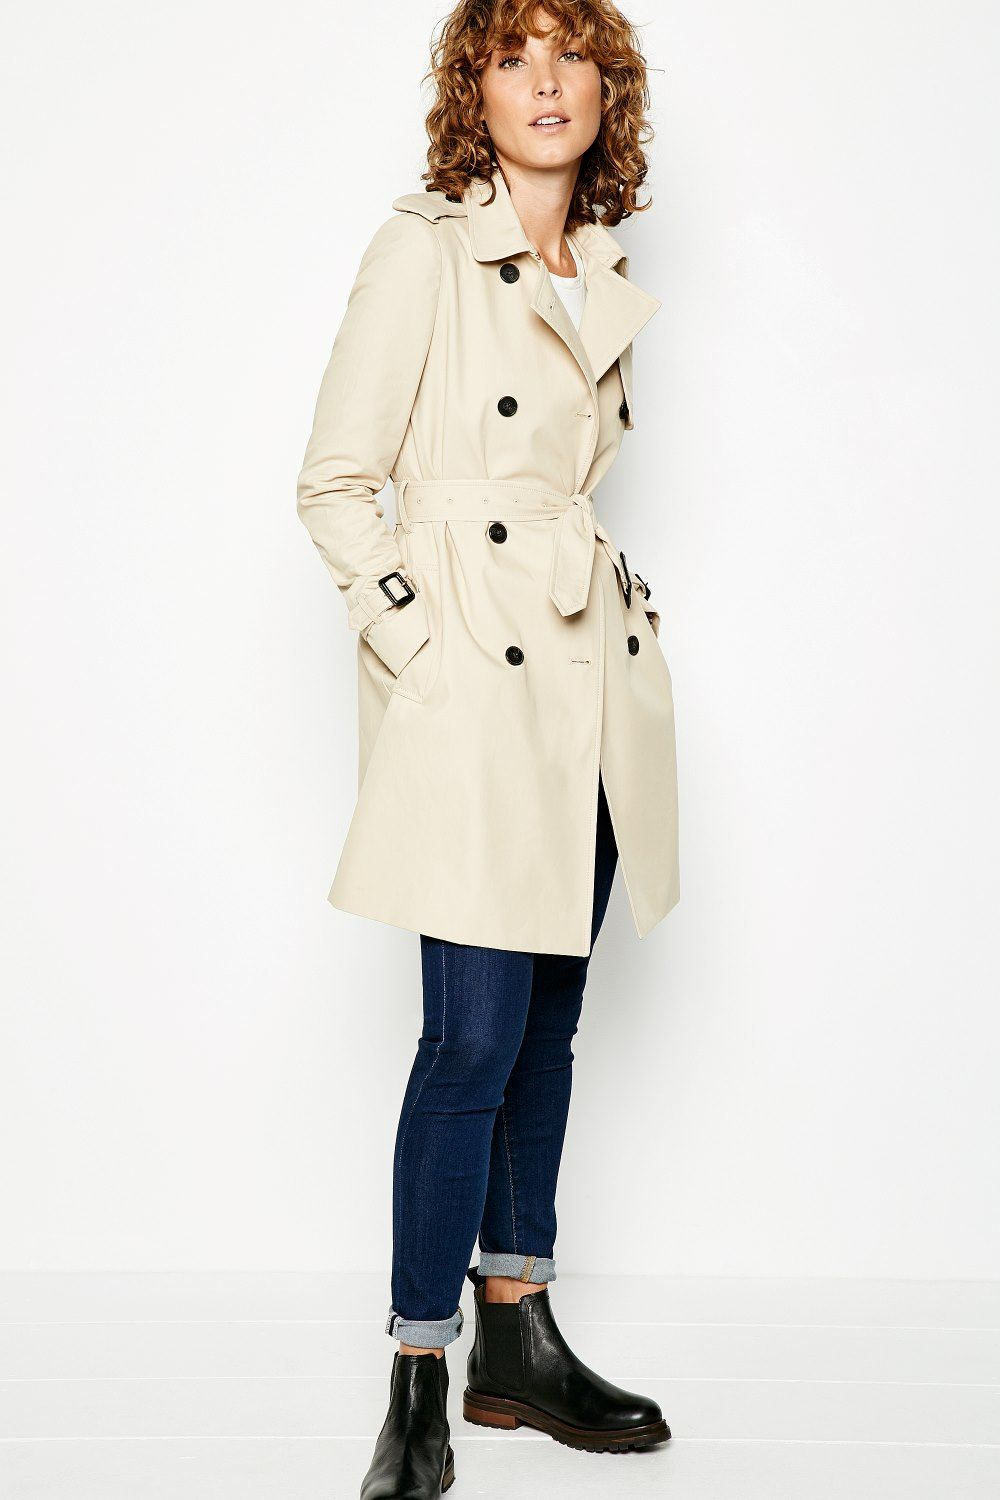 Jack Wills classic trench coat